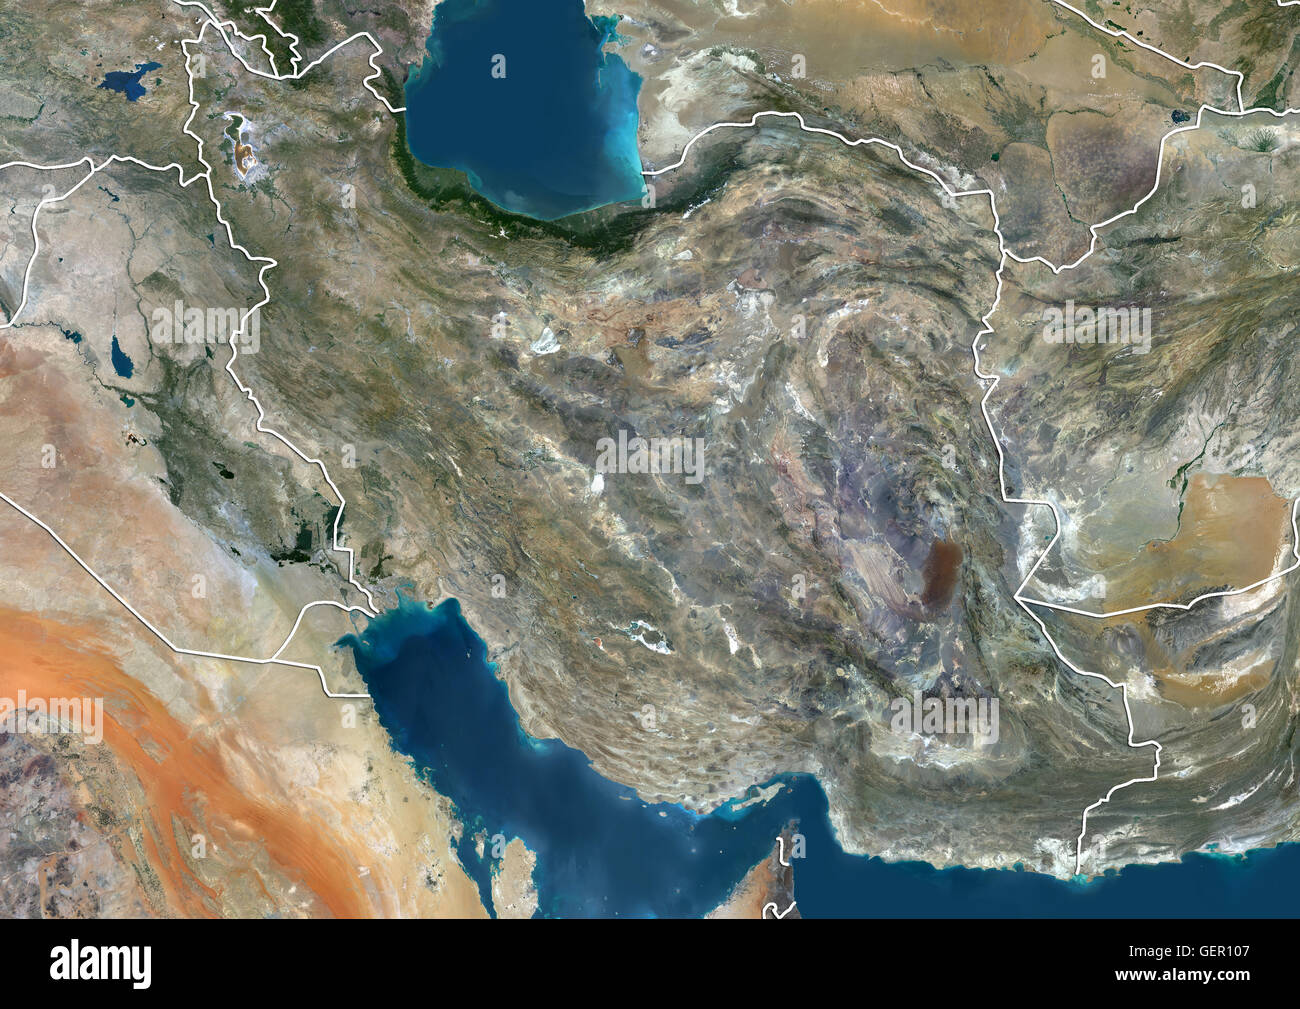 Satellite view of Iran with country boundaries